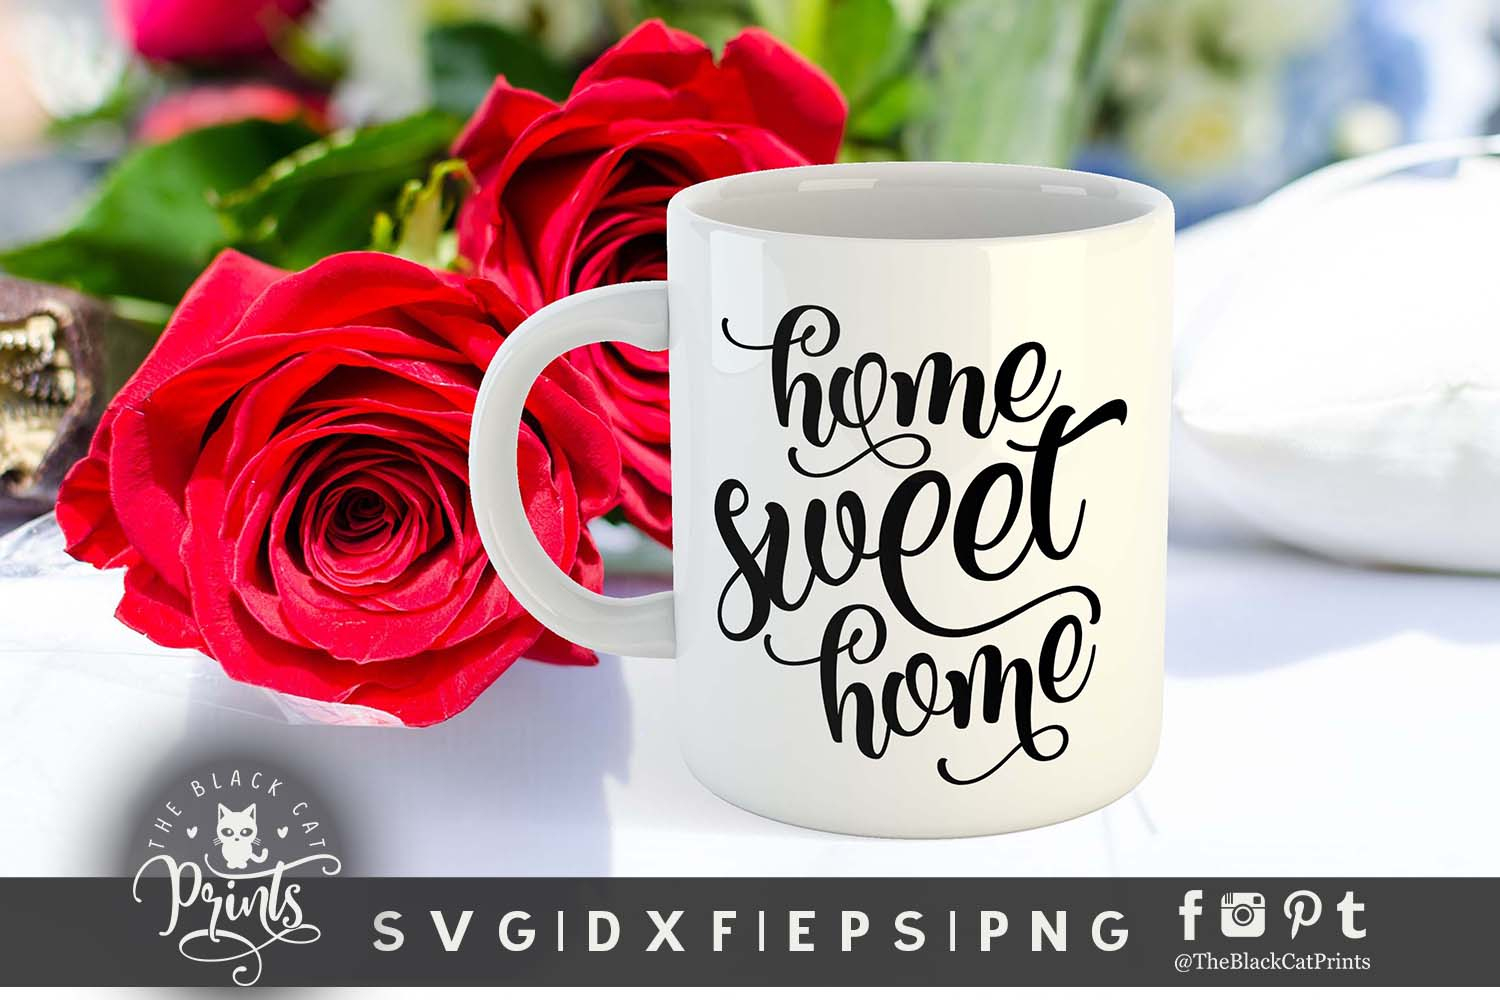 Home sweet home SVG PNG EPS DXF example image 3